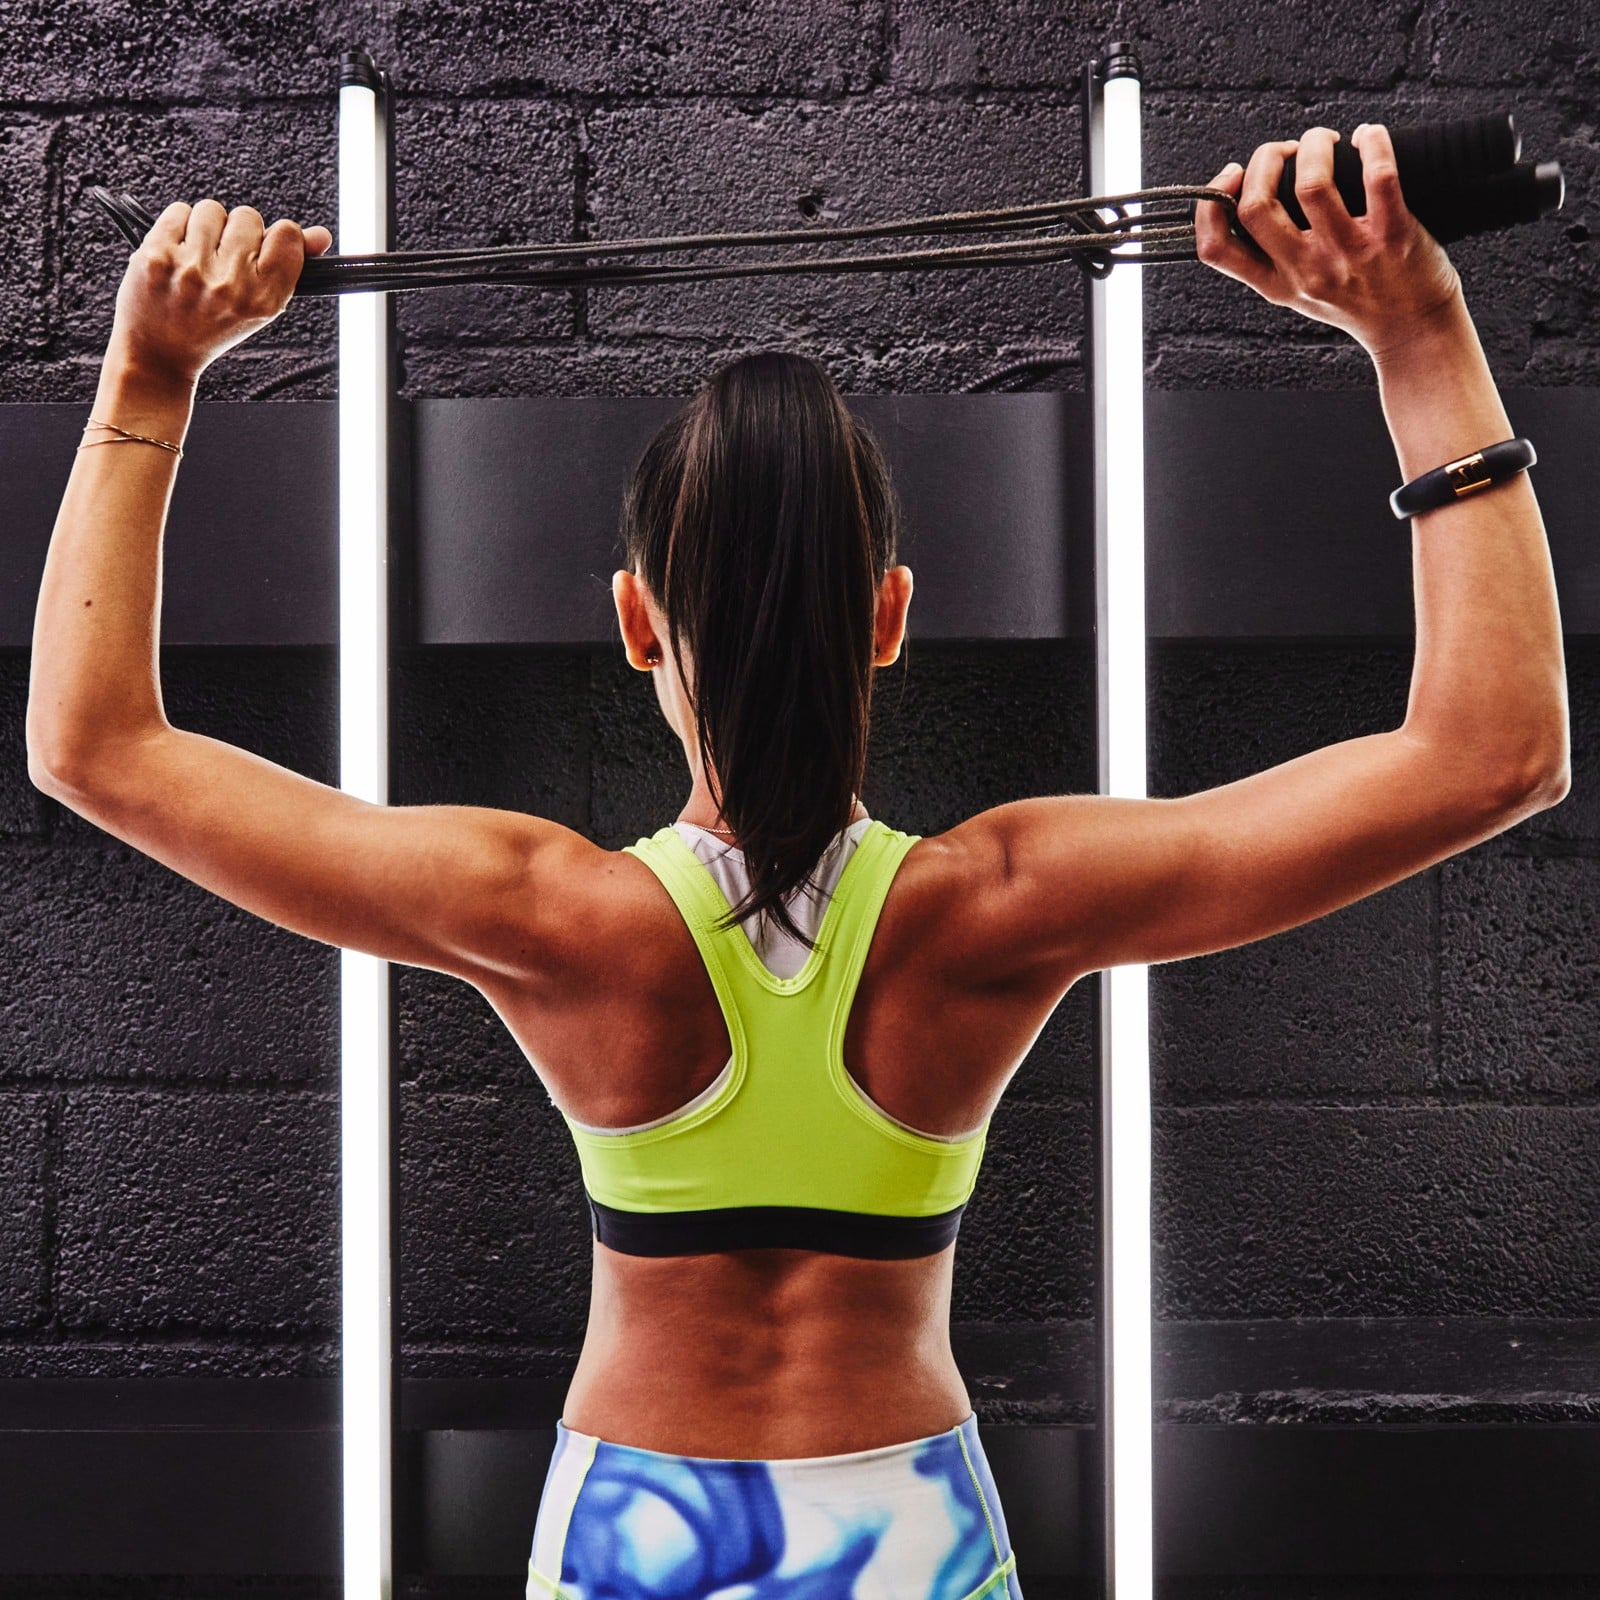 Up Ladder Crossfit Workout Popsugar Fitness